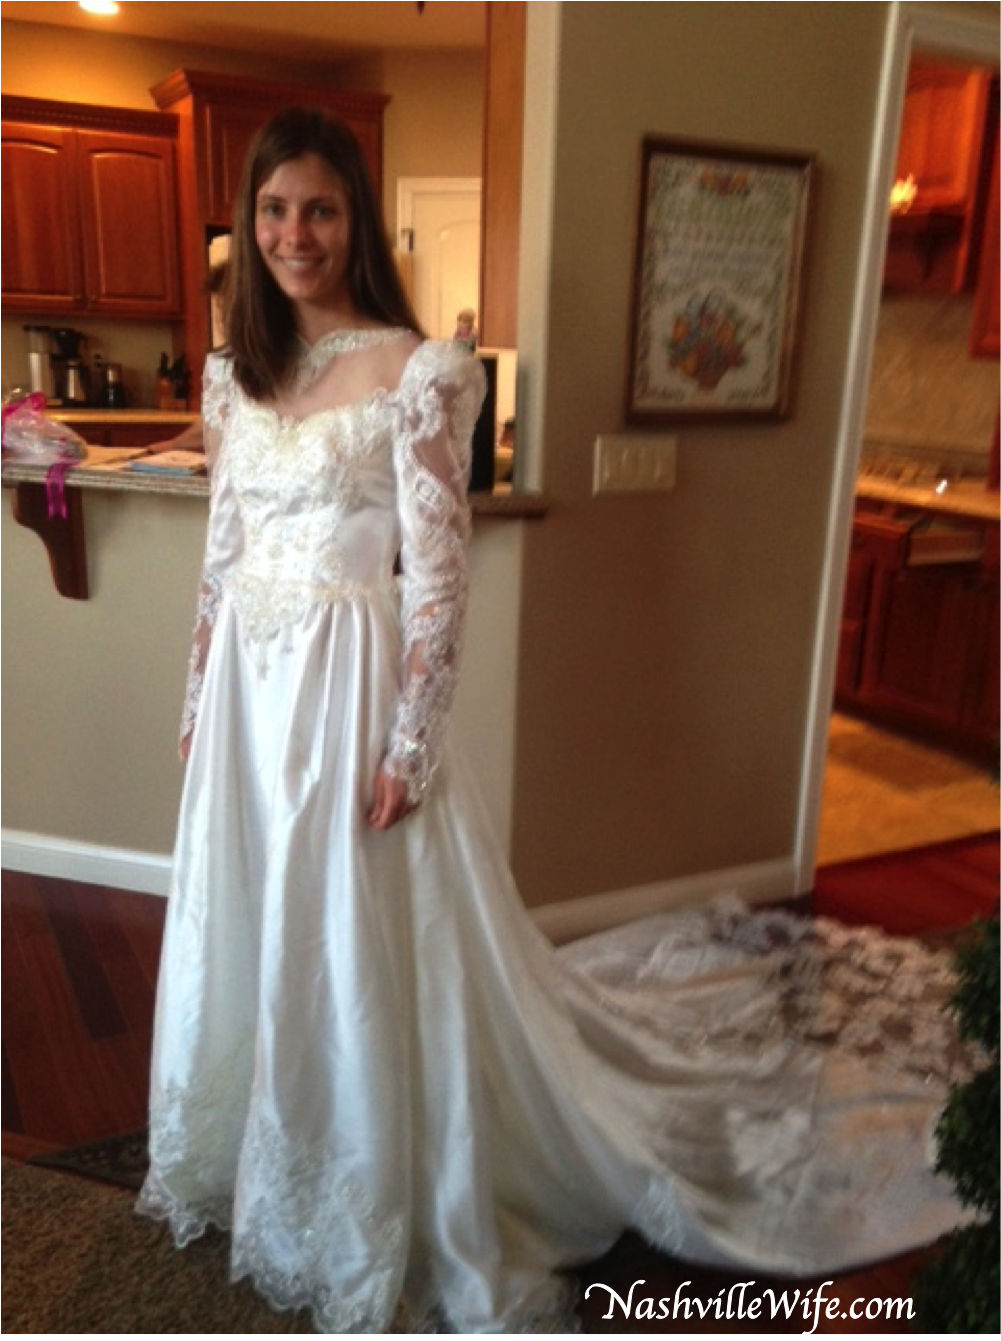 The Seamstress Shortened Sleeves Made Bodice A Little More Snug And Removed Some Of Lace Beads Around Neck